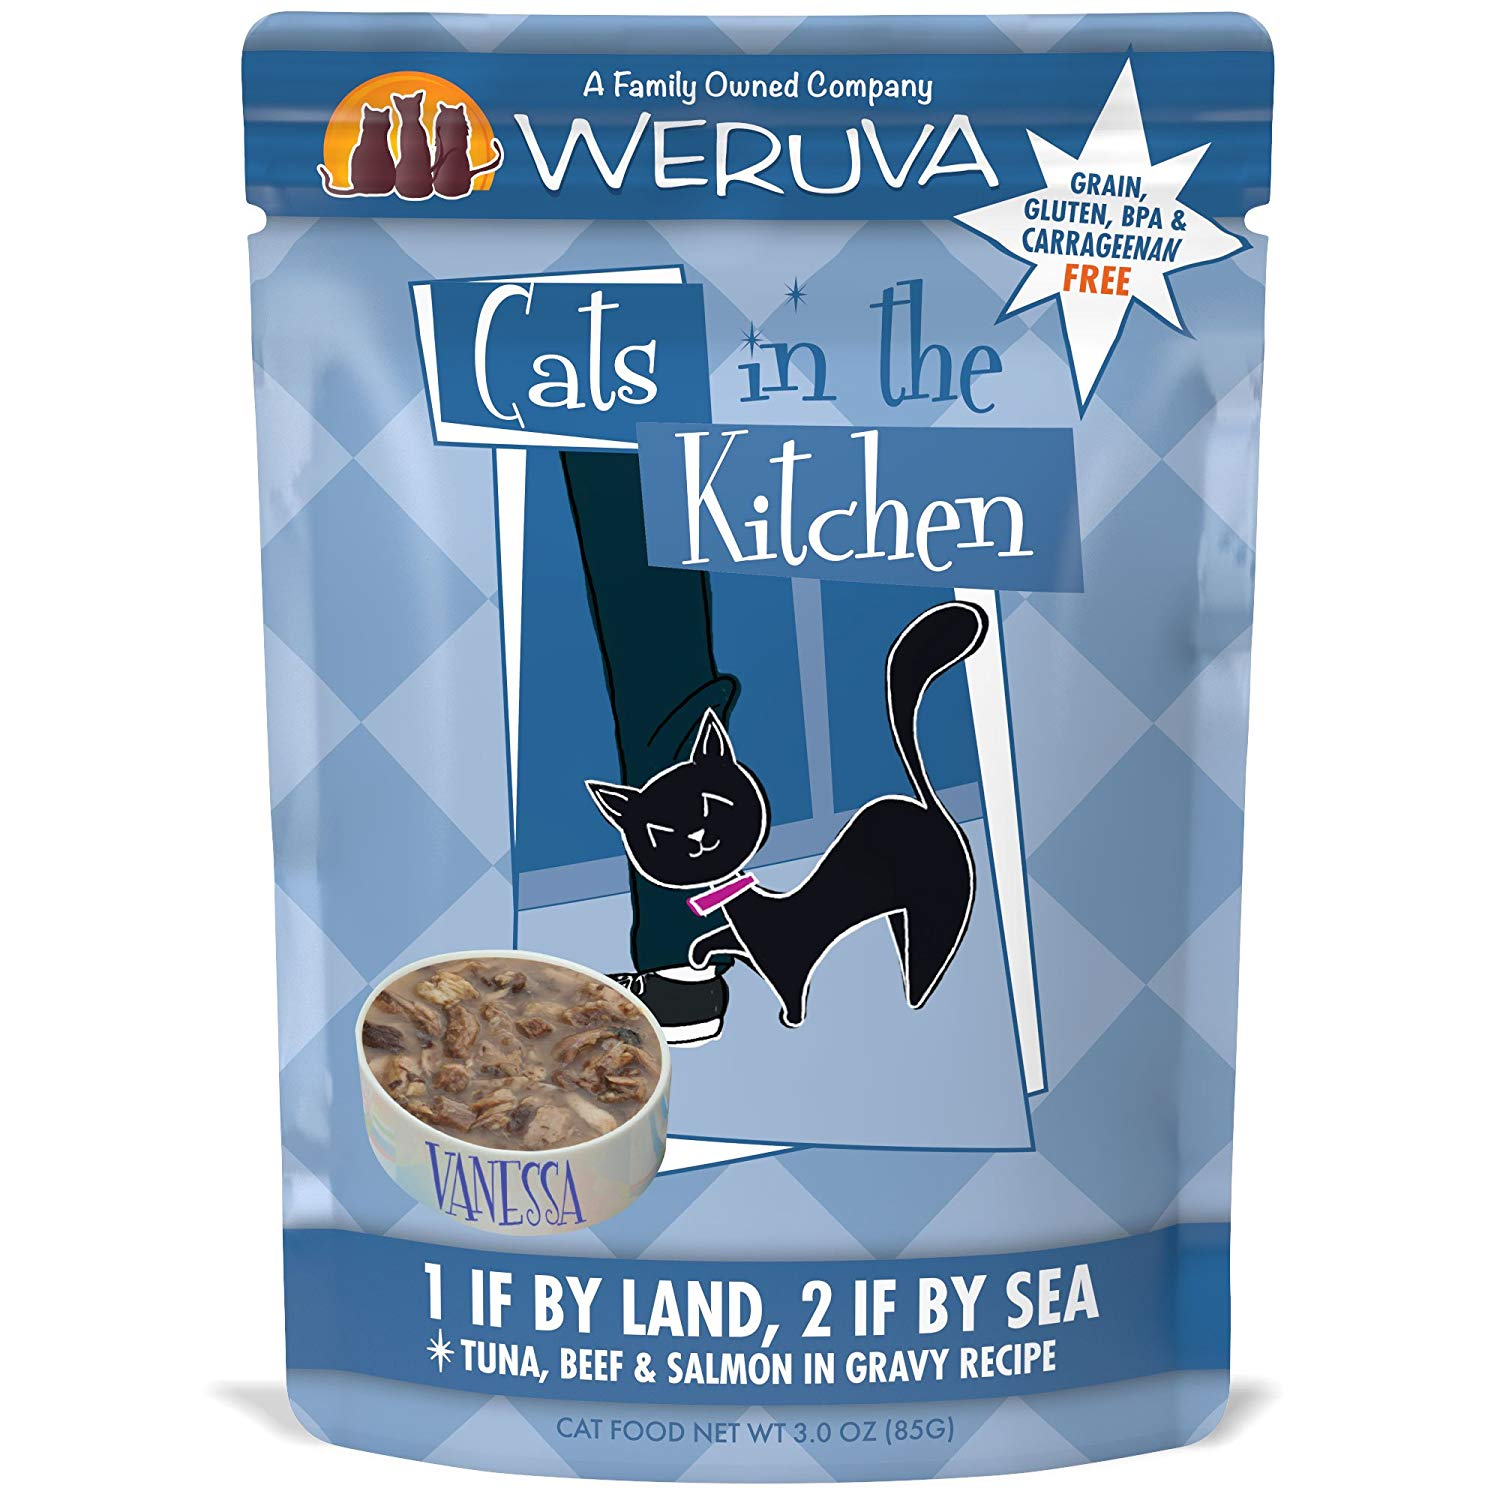 Weruva Cats in the Kitchen 1 If By Land, 2 If By Sea Tuna, Beef & Salmon in Gravy Recipe Grain-Free Wet Cat Food, 3-oz pouch